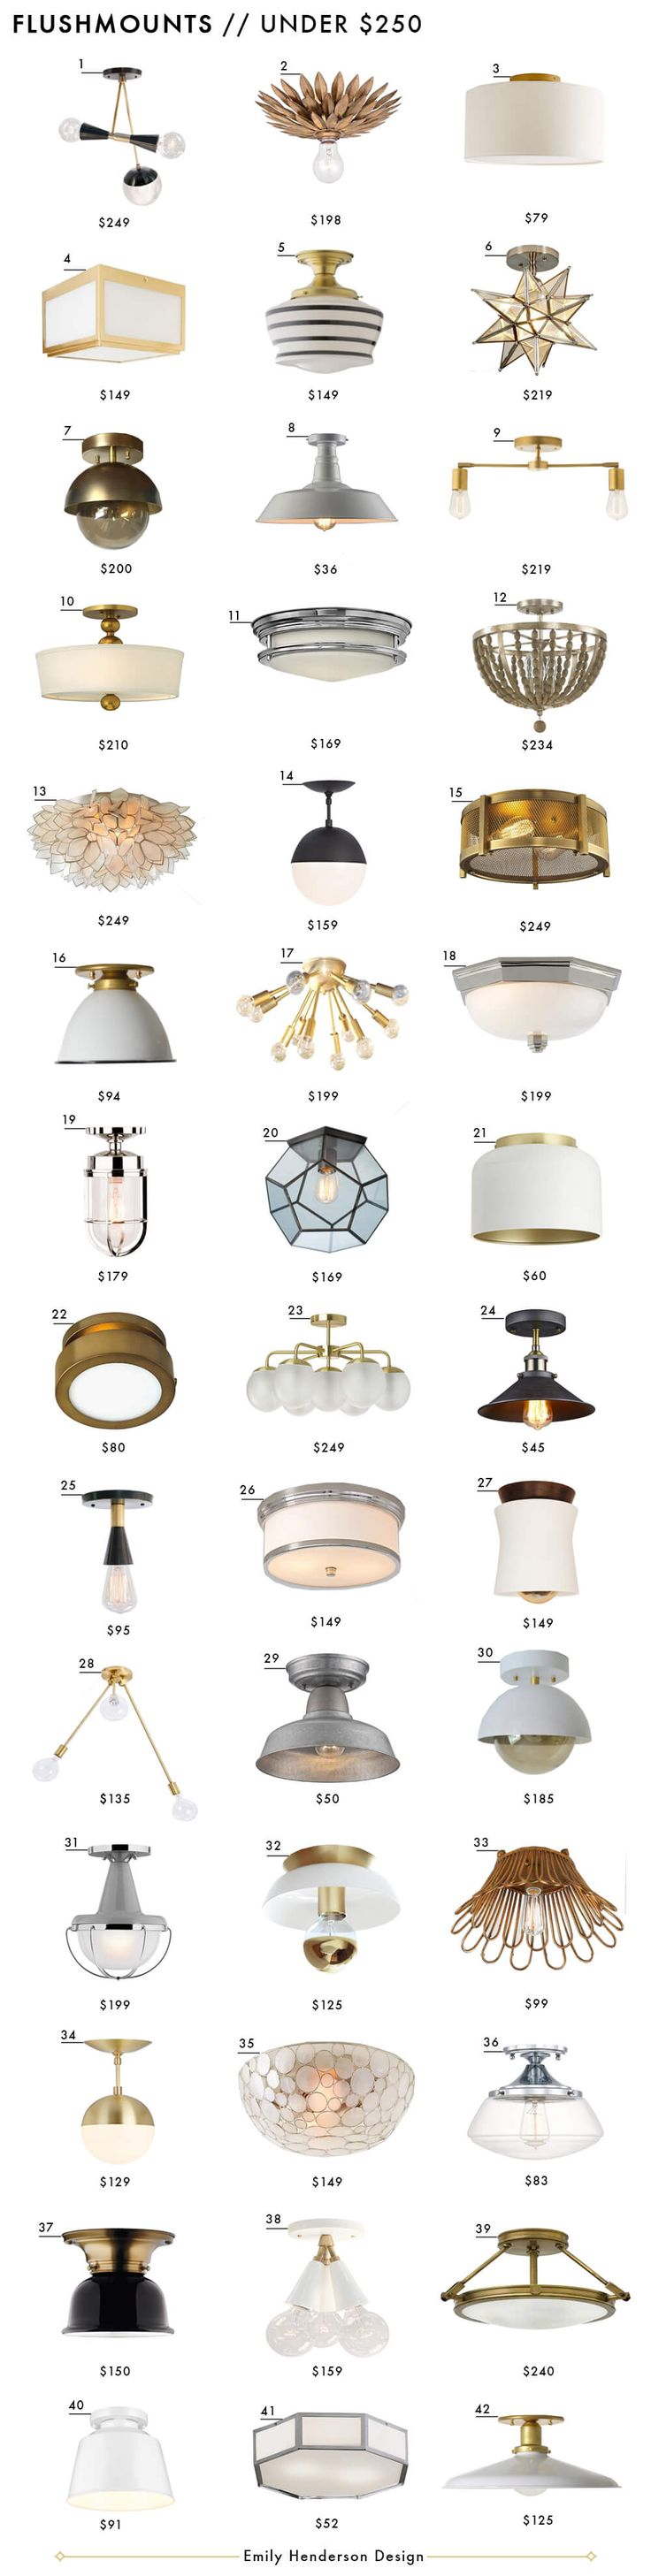 Best 20  Entry lighting ideas on Pinterest   Lantern light fixture  Foyer  lighting and Hallway lightingBest 20  Entry lighting ideas on Pinterest   Lantern light fixture  . Hall Lighting Victoria Texas. Home Design Ideas